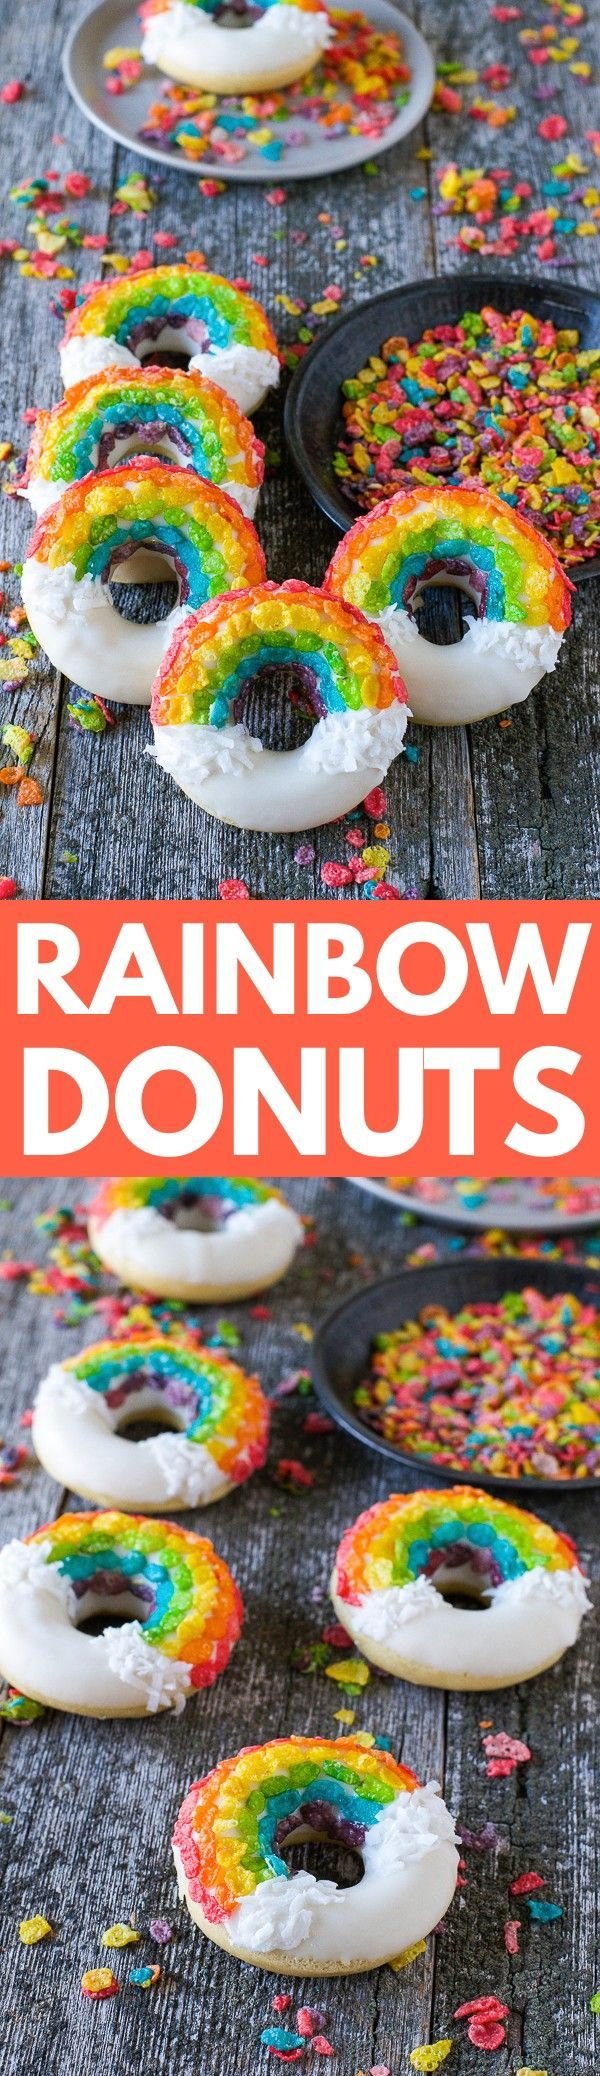 Rainbow Donuts – these fun donuts are made using fruity pebbles, white chocolate and shredded coconut!